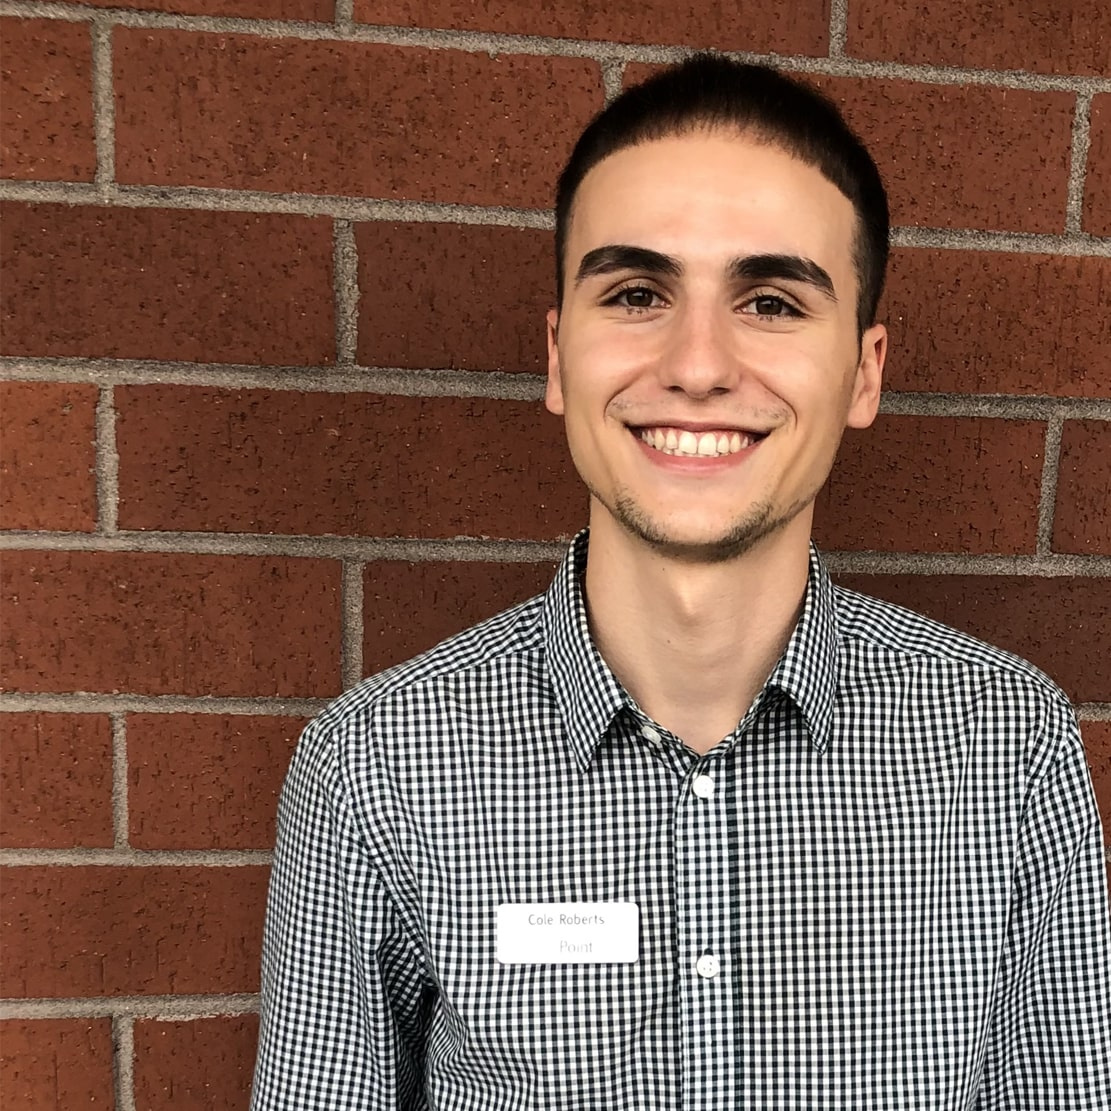 Employee Spotlight with Cole Roberts